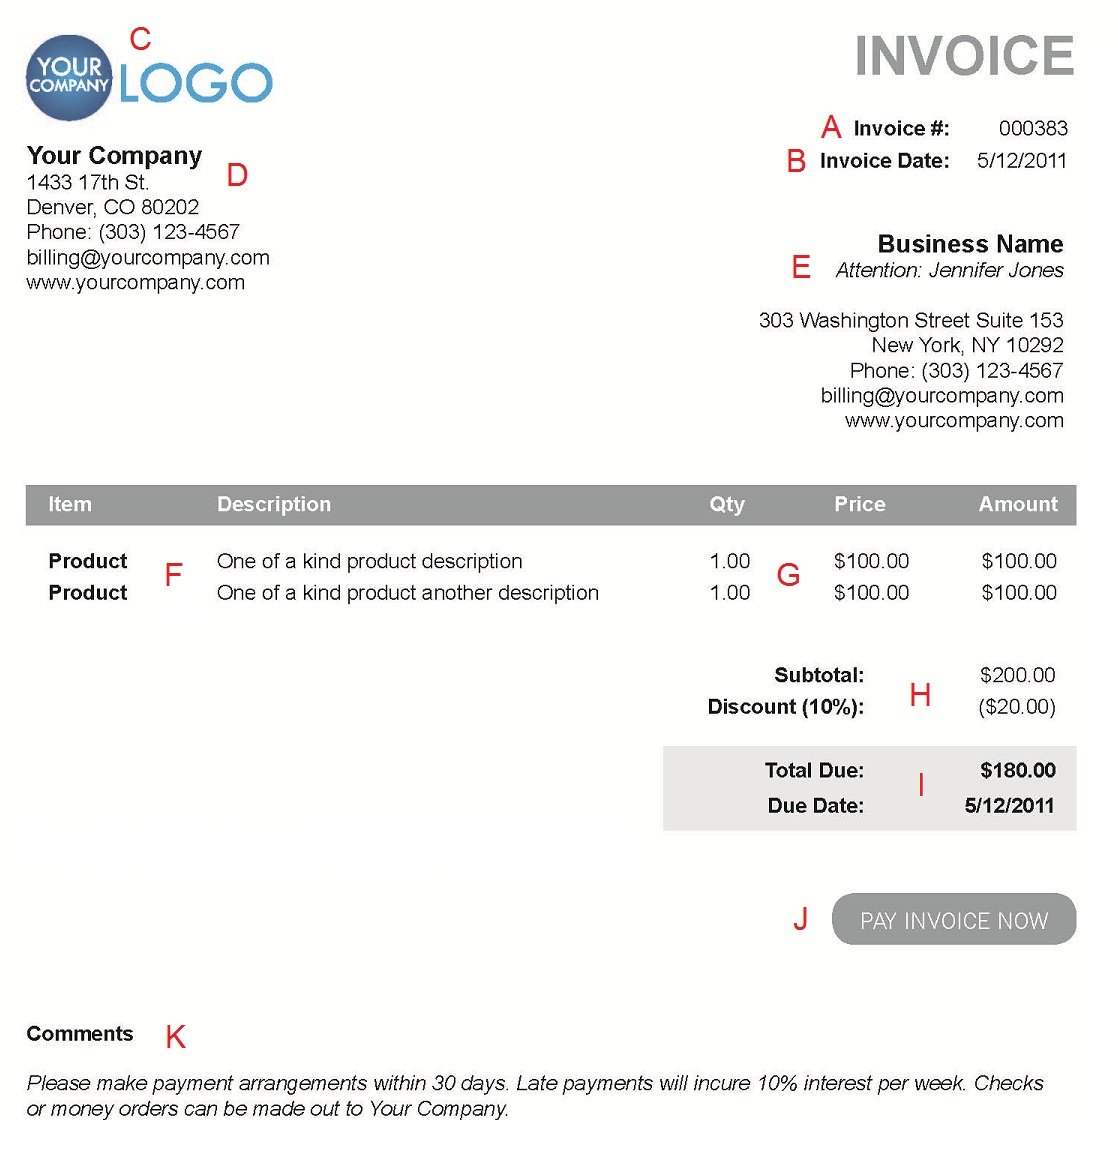 Hucareus  Ravishing The  Different Sections Of An Electronic Payment Invoice With Lovely A  With Beauteous Sample Official Receipt Template Also Product Receipt Template In Addition Cash Book Receipts And Lic Policy Premium Receipt Online As Well As Cash Sale Receipt Template Word Additionally Best Receipt And Document Scanner From Paysimplecom With Hucareus  Lovely The  Different Sections Of An Electronic Payment Invoice With Beauteous A  And Ravishing Sample Official Receipt Template Also Product Receipt Template In Addition Cash Book Receipts From Paysimplecom